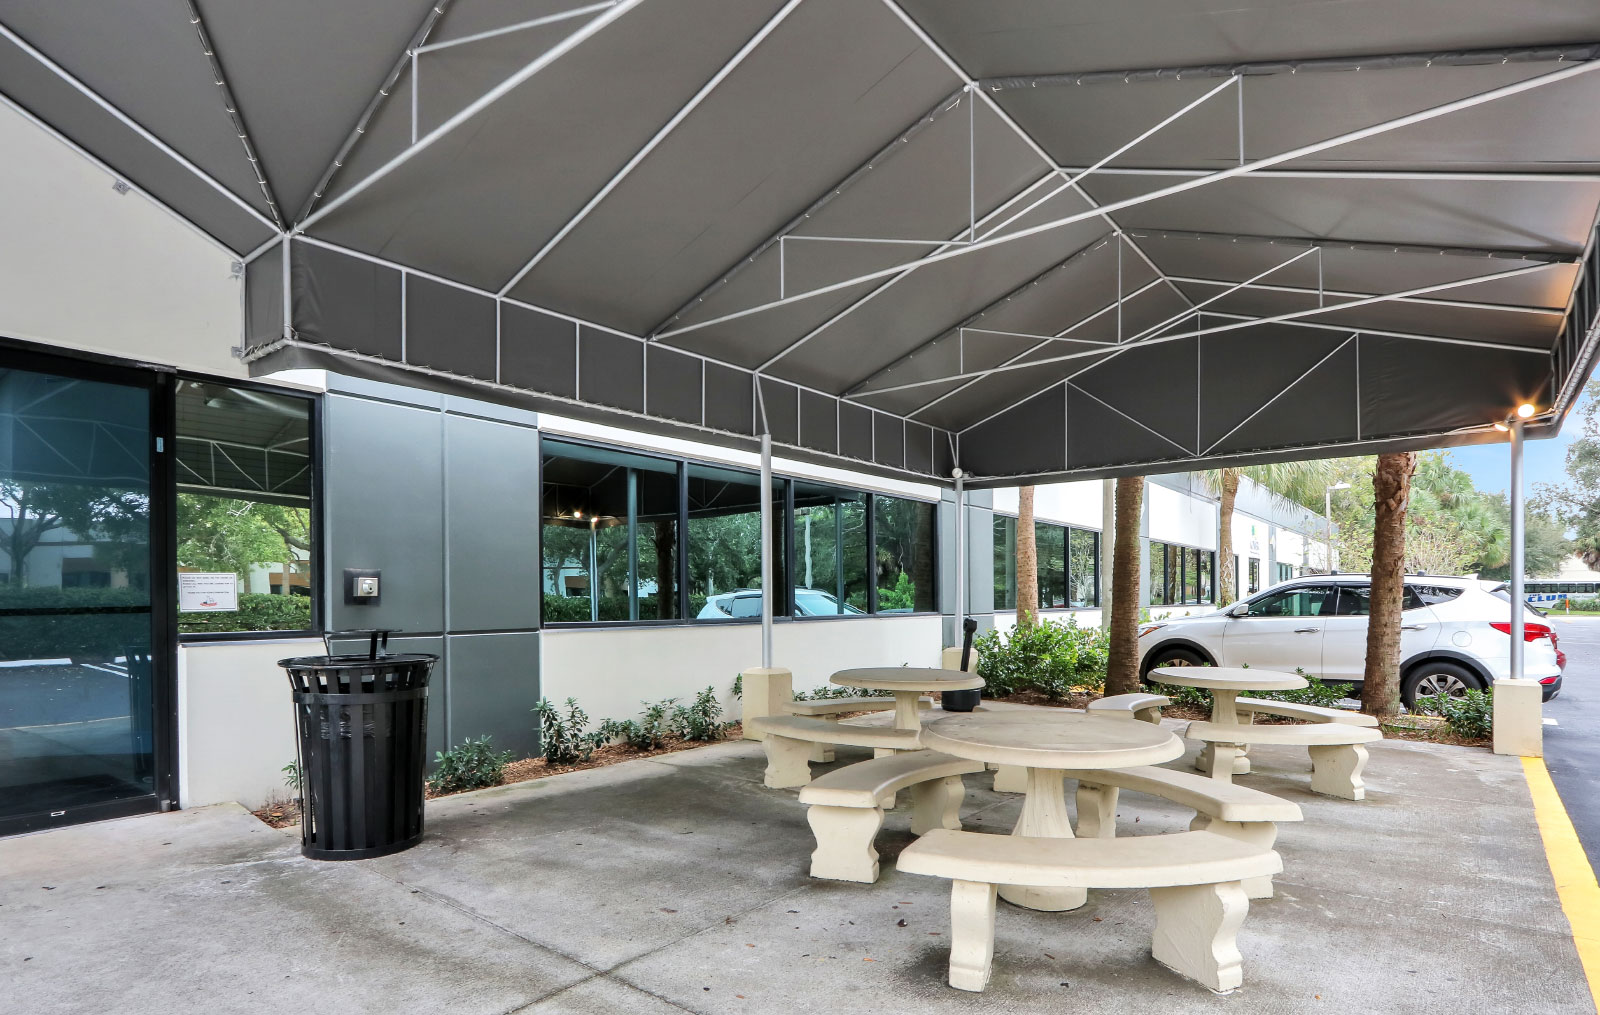 A large covered patio with three concrete circular tables that are accompanied by three curved concrete benches at each of them.